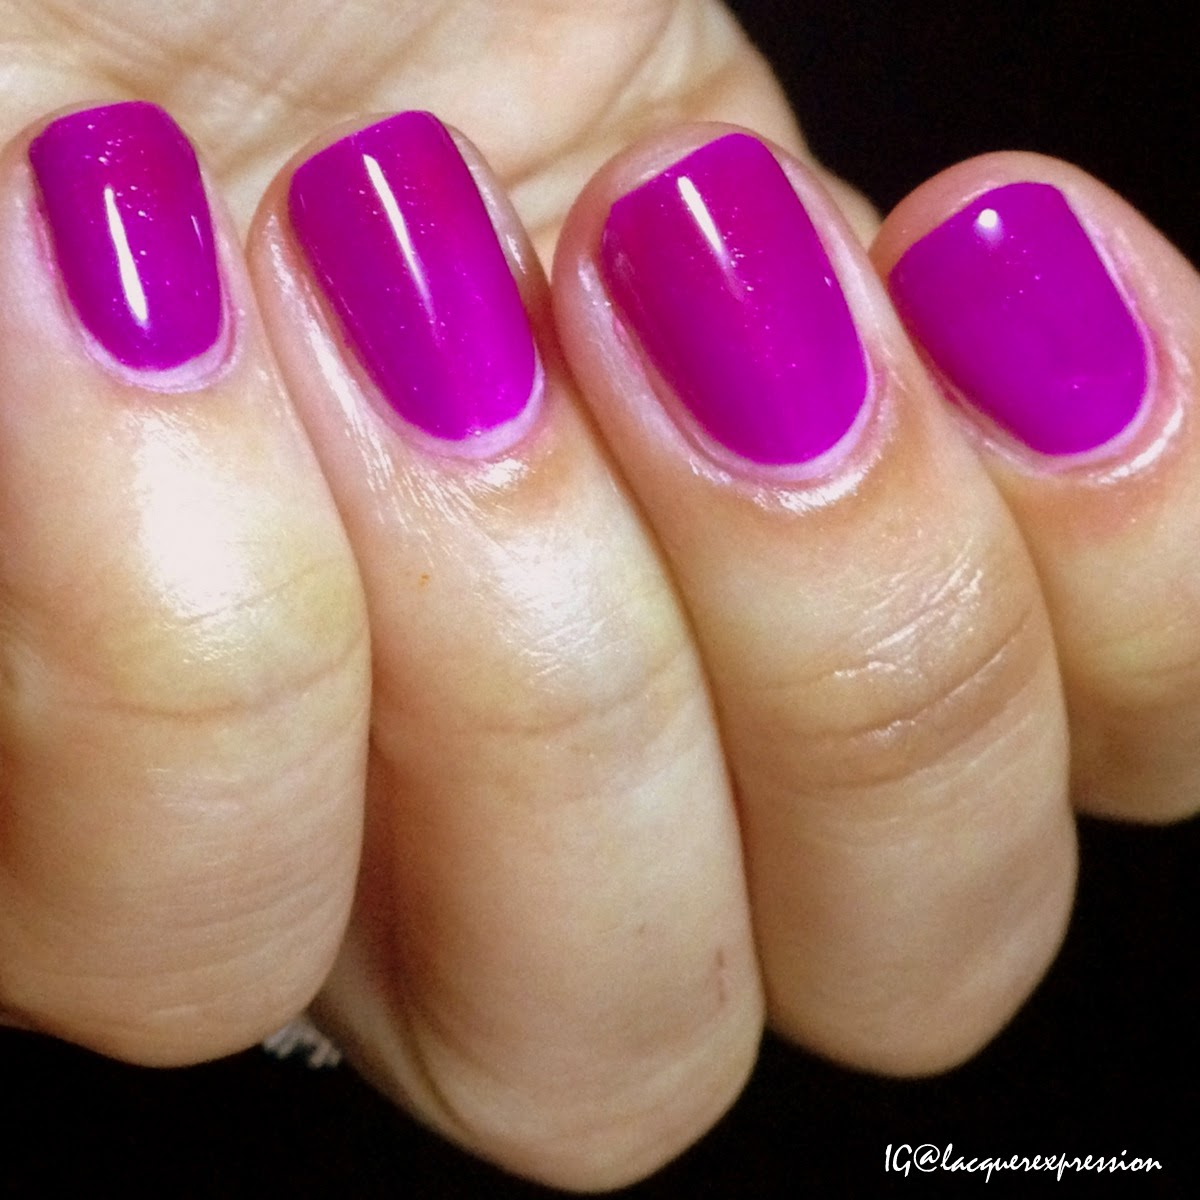 swatch and review of Max Splash nail polish by Shinespark